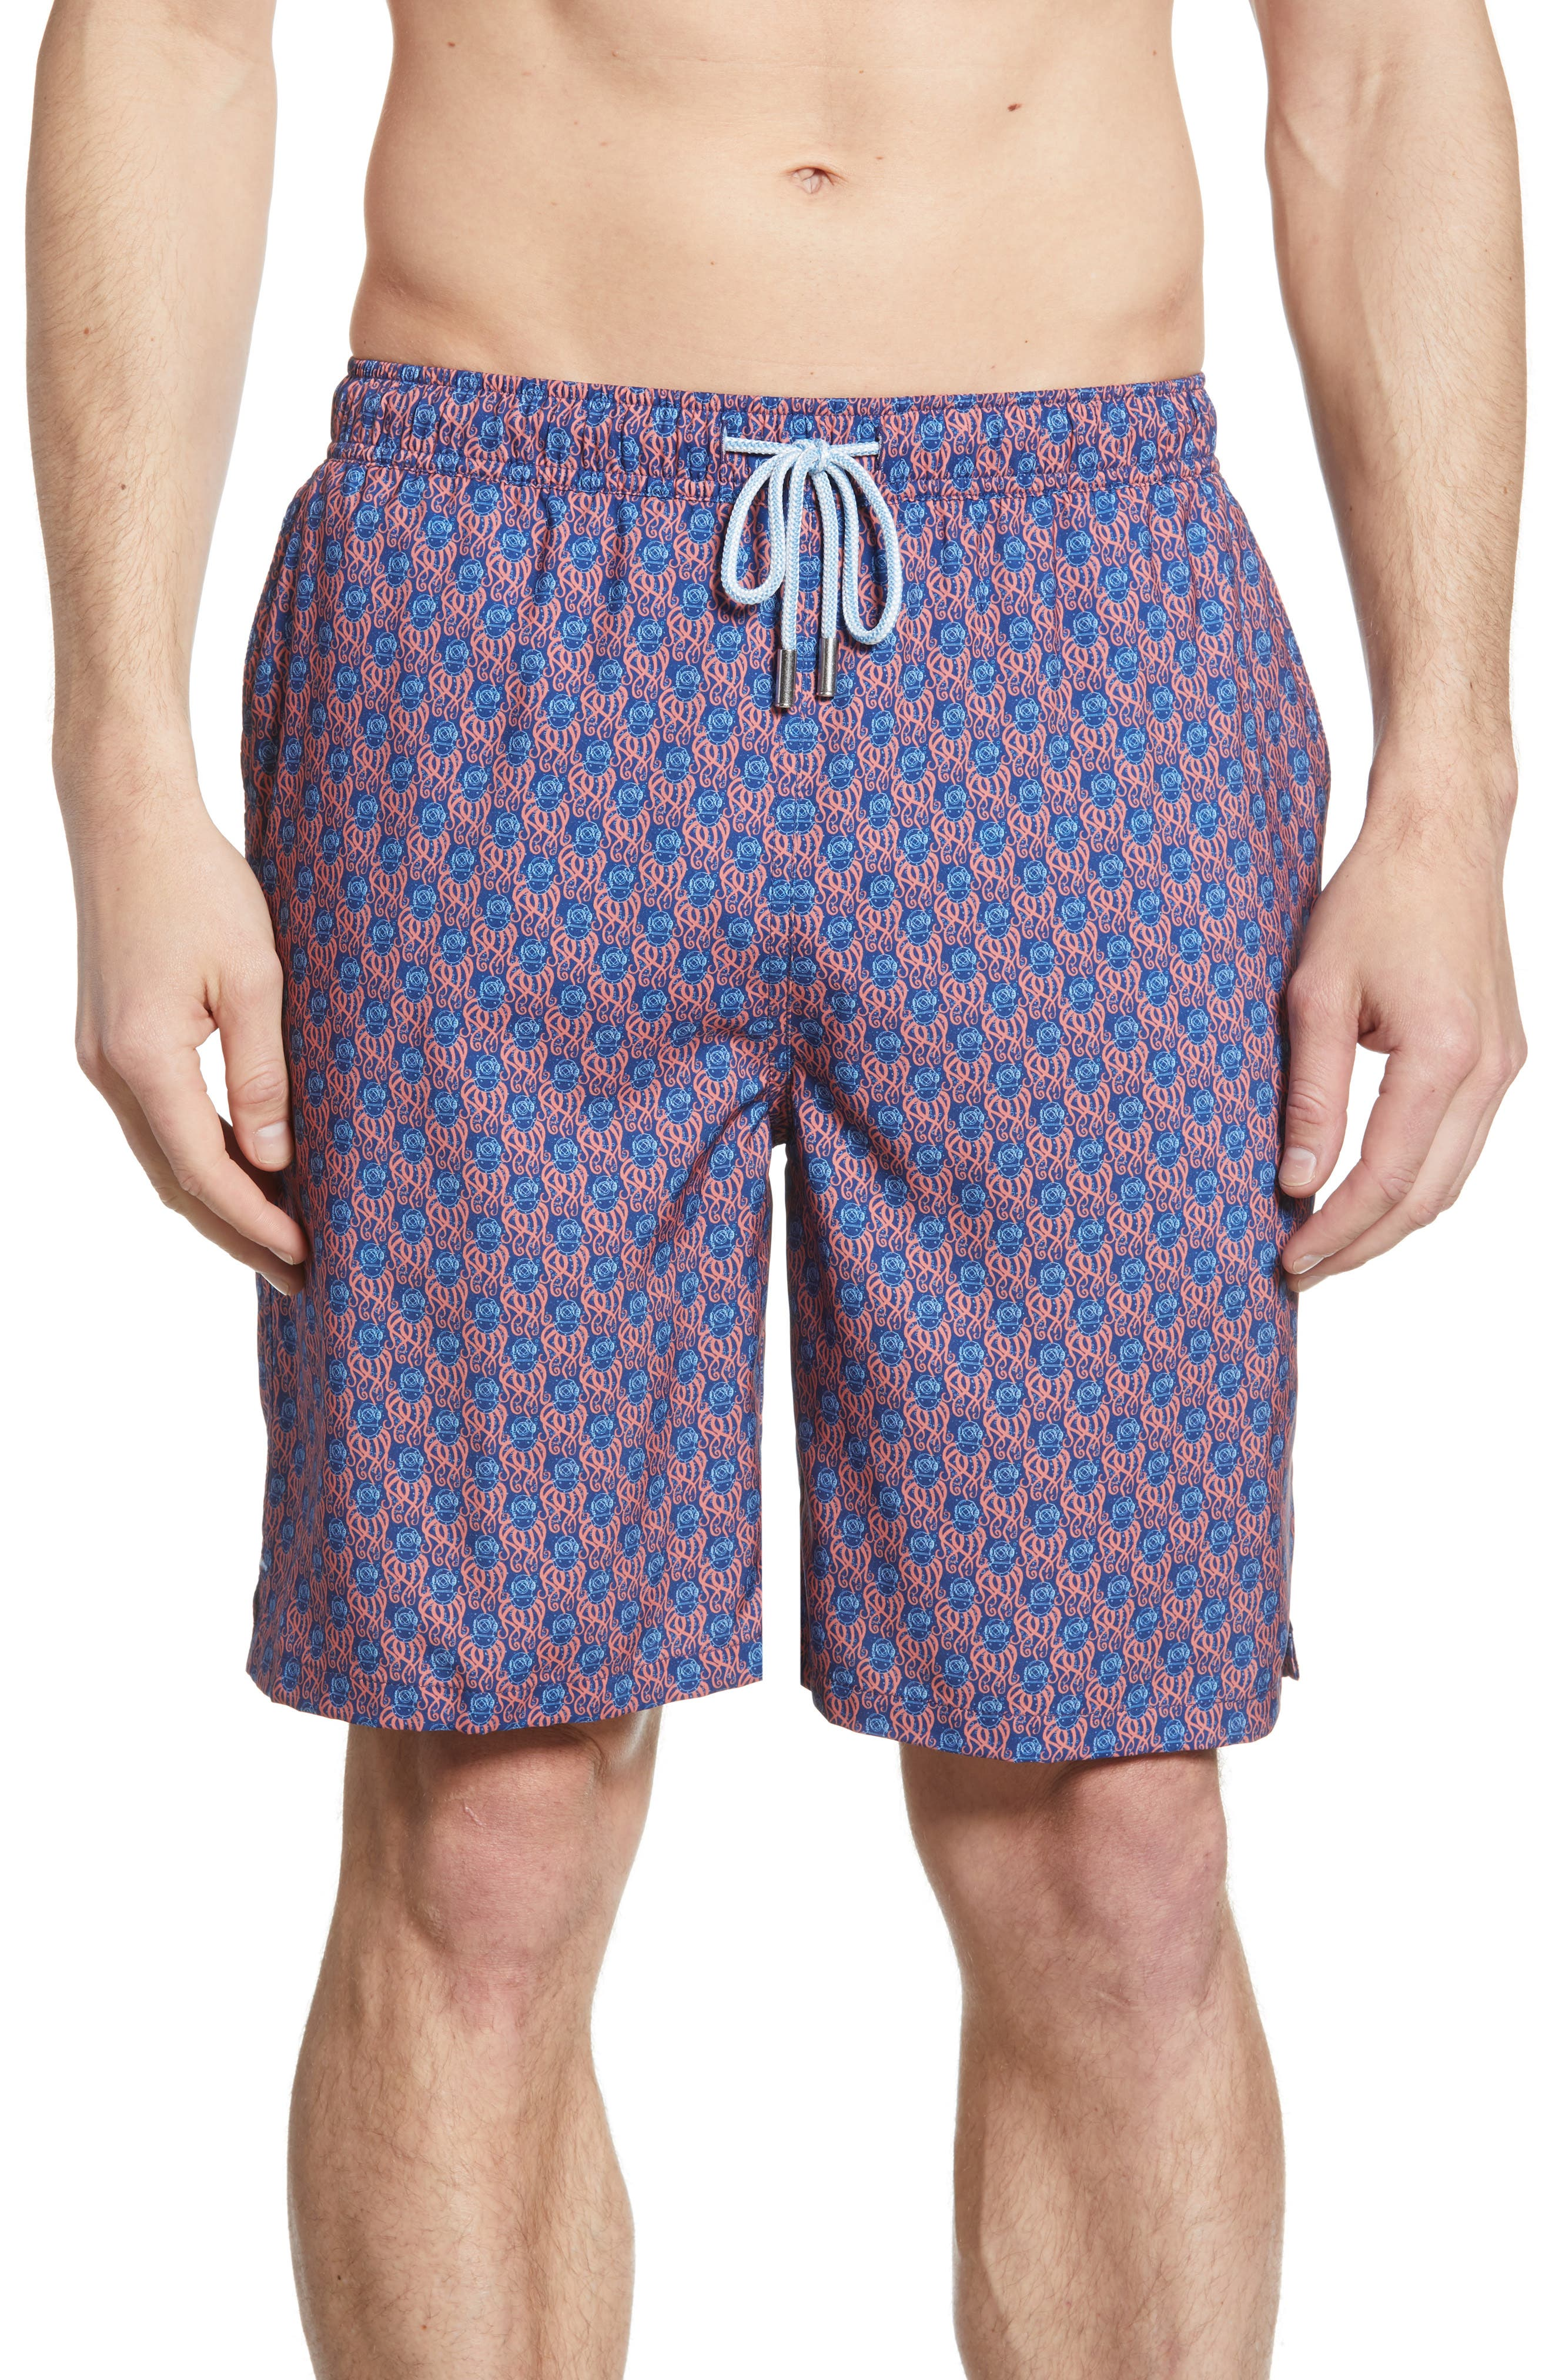 Peter Millar 1000 Leagues Swim Trunks, Blue